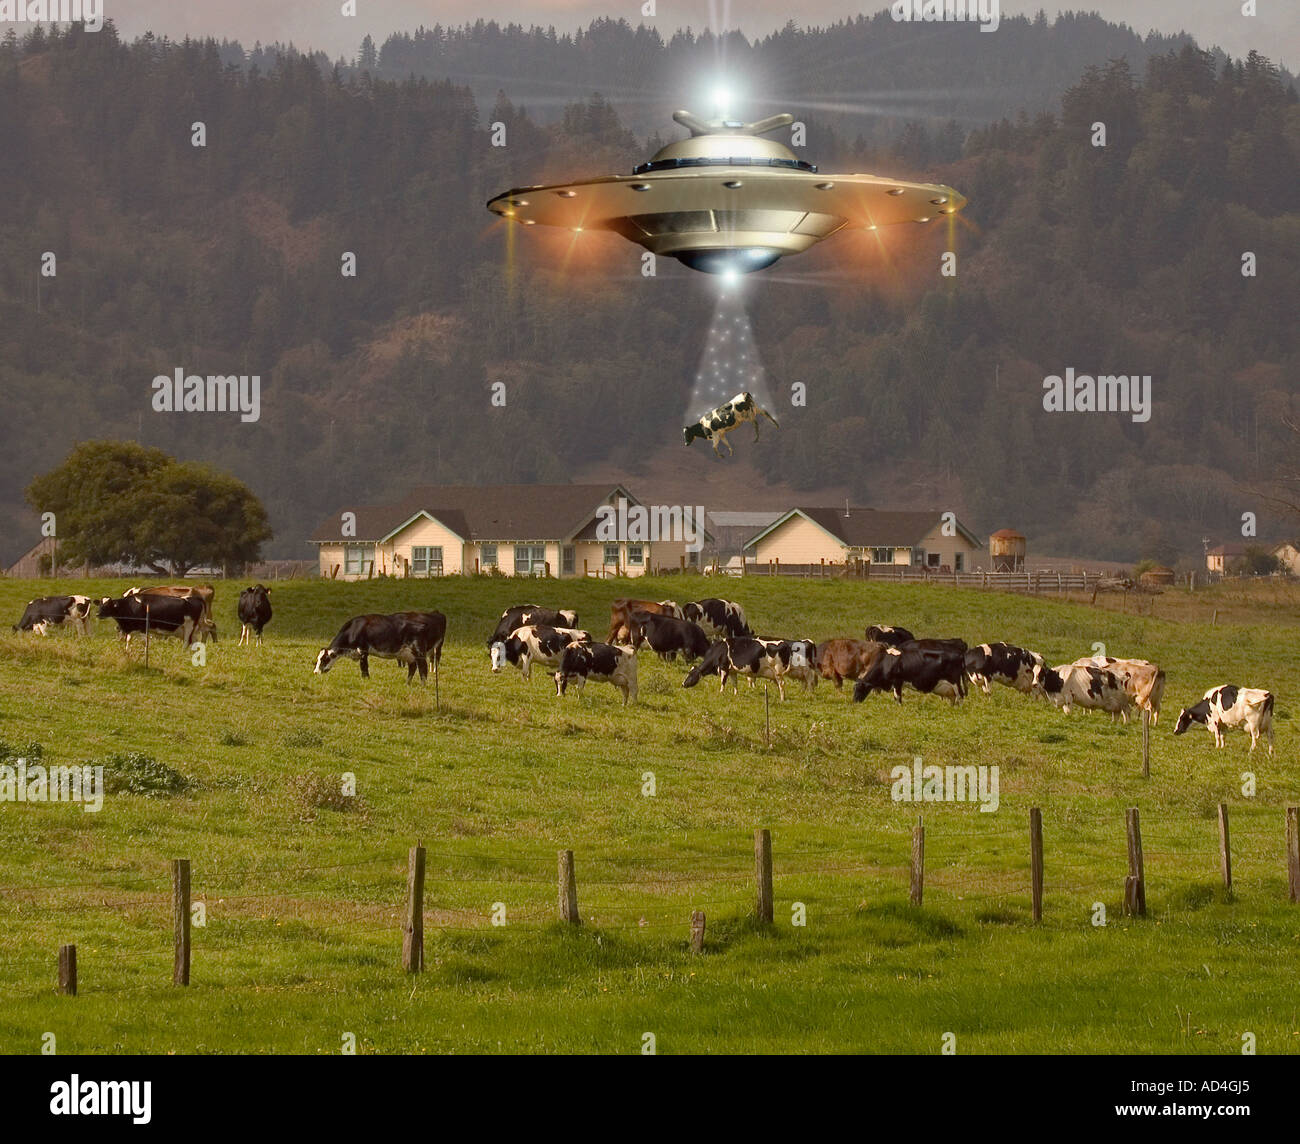 Extraterrestrial cow abduction. - Stock Image